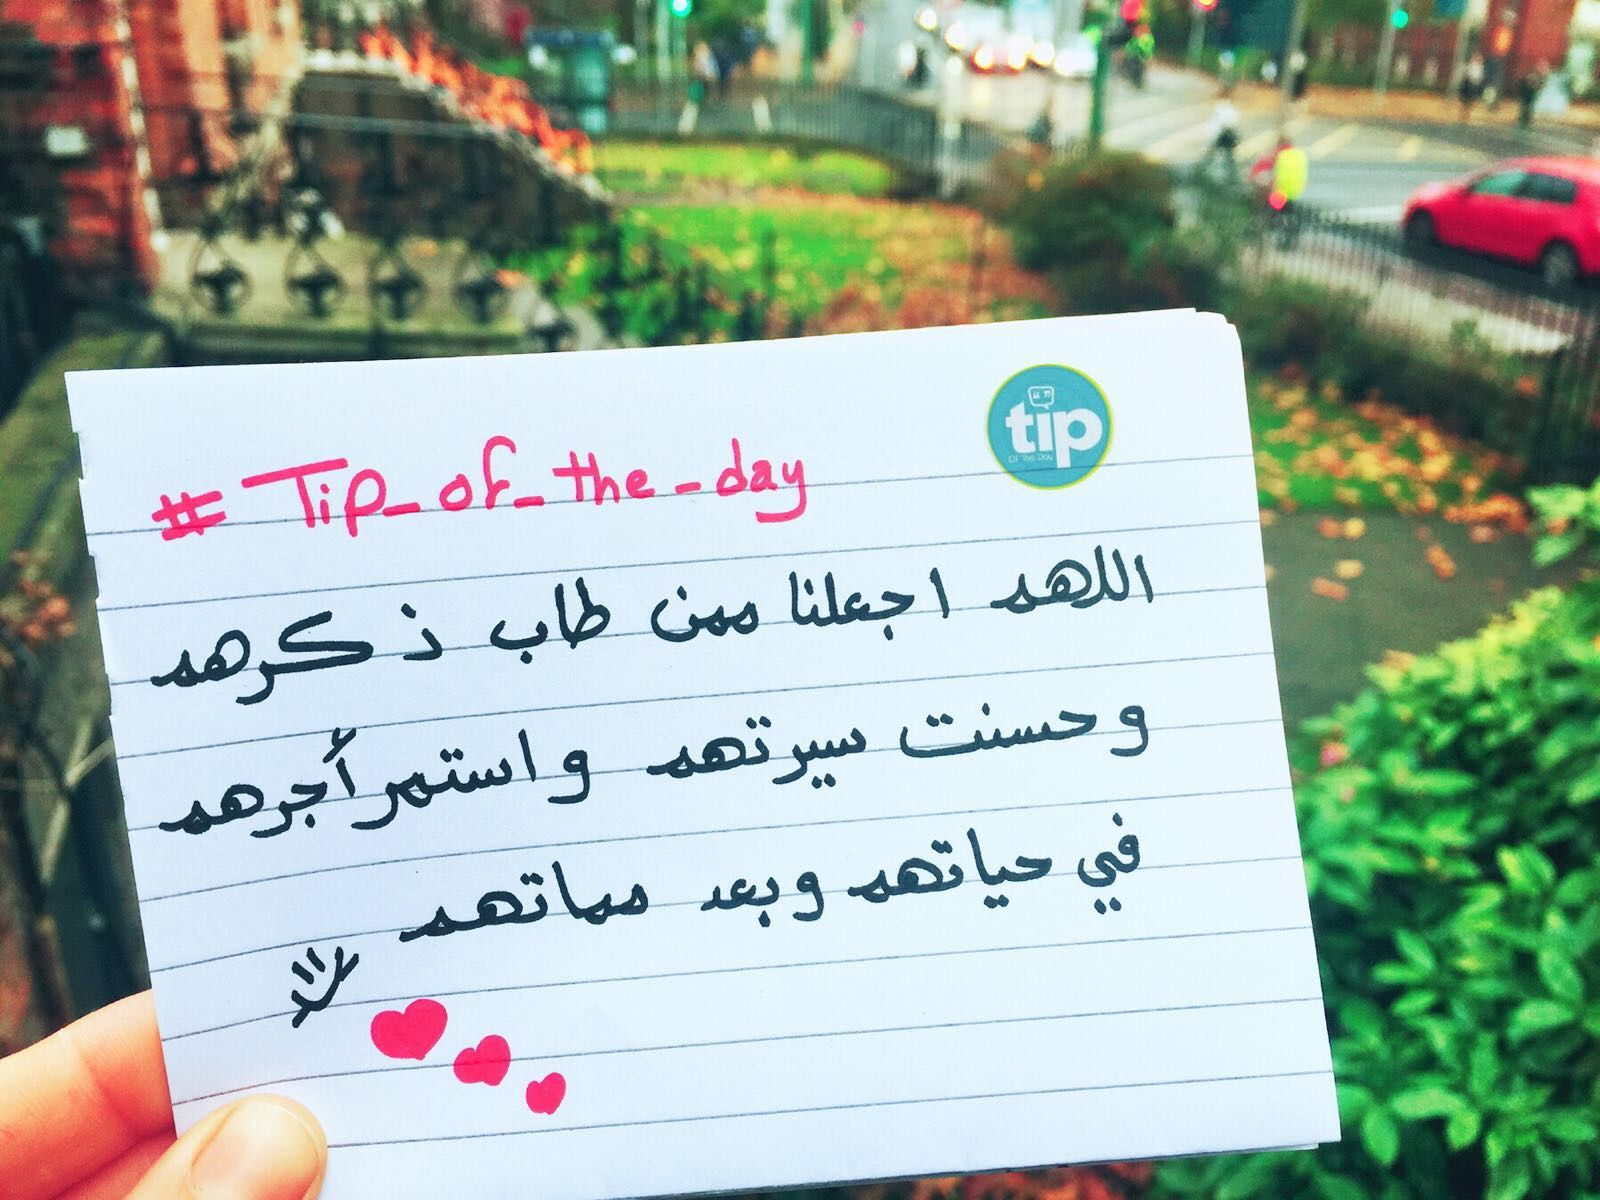 Pin By Tip Of The Day On عبارات جميلة Tip Of The Day Personalized Gifts Day